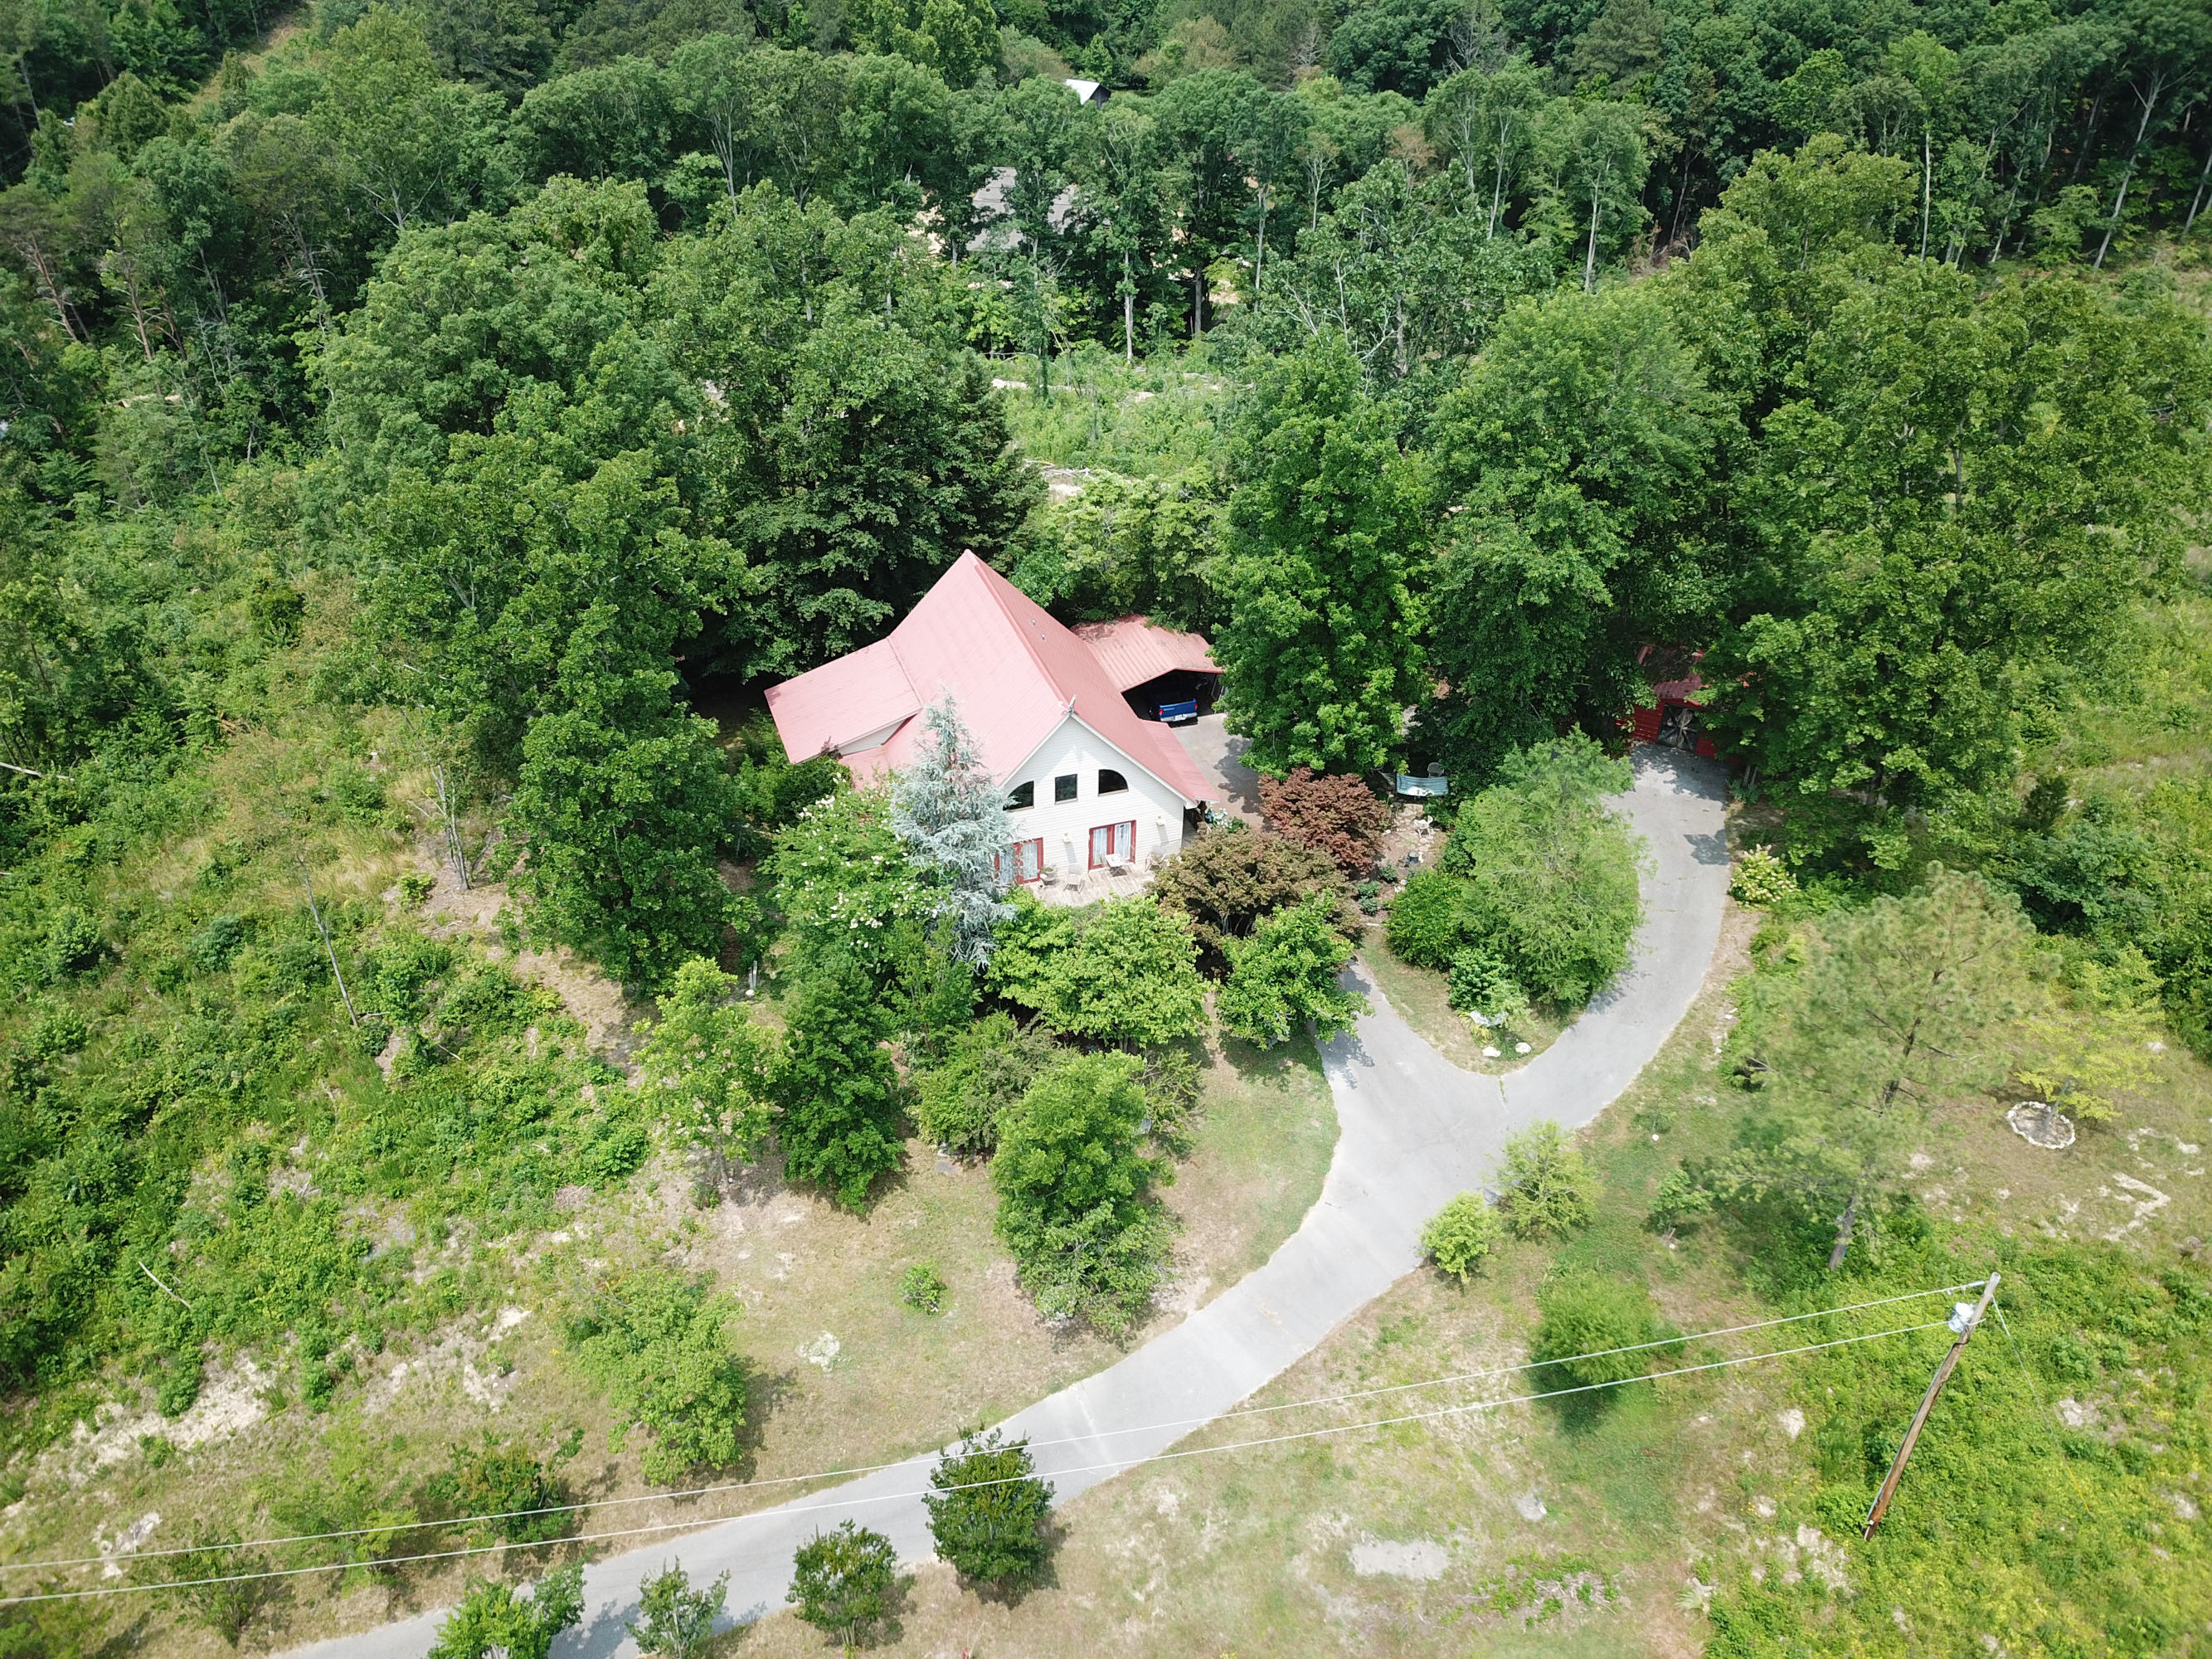 1751 County Road 50, Riceville, Tennessee, United States 37370, 2 Bedrooms Bedrooms, ,2 BathroomsBathrooms,Single Family,For Sale,County Road 50,1100481